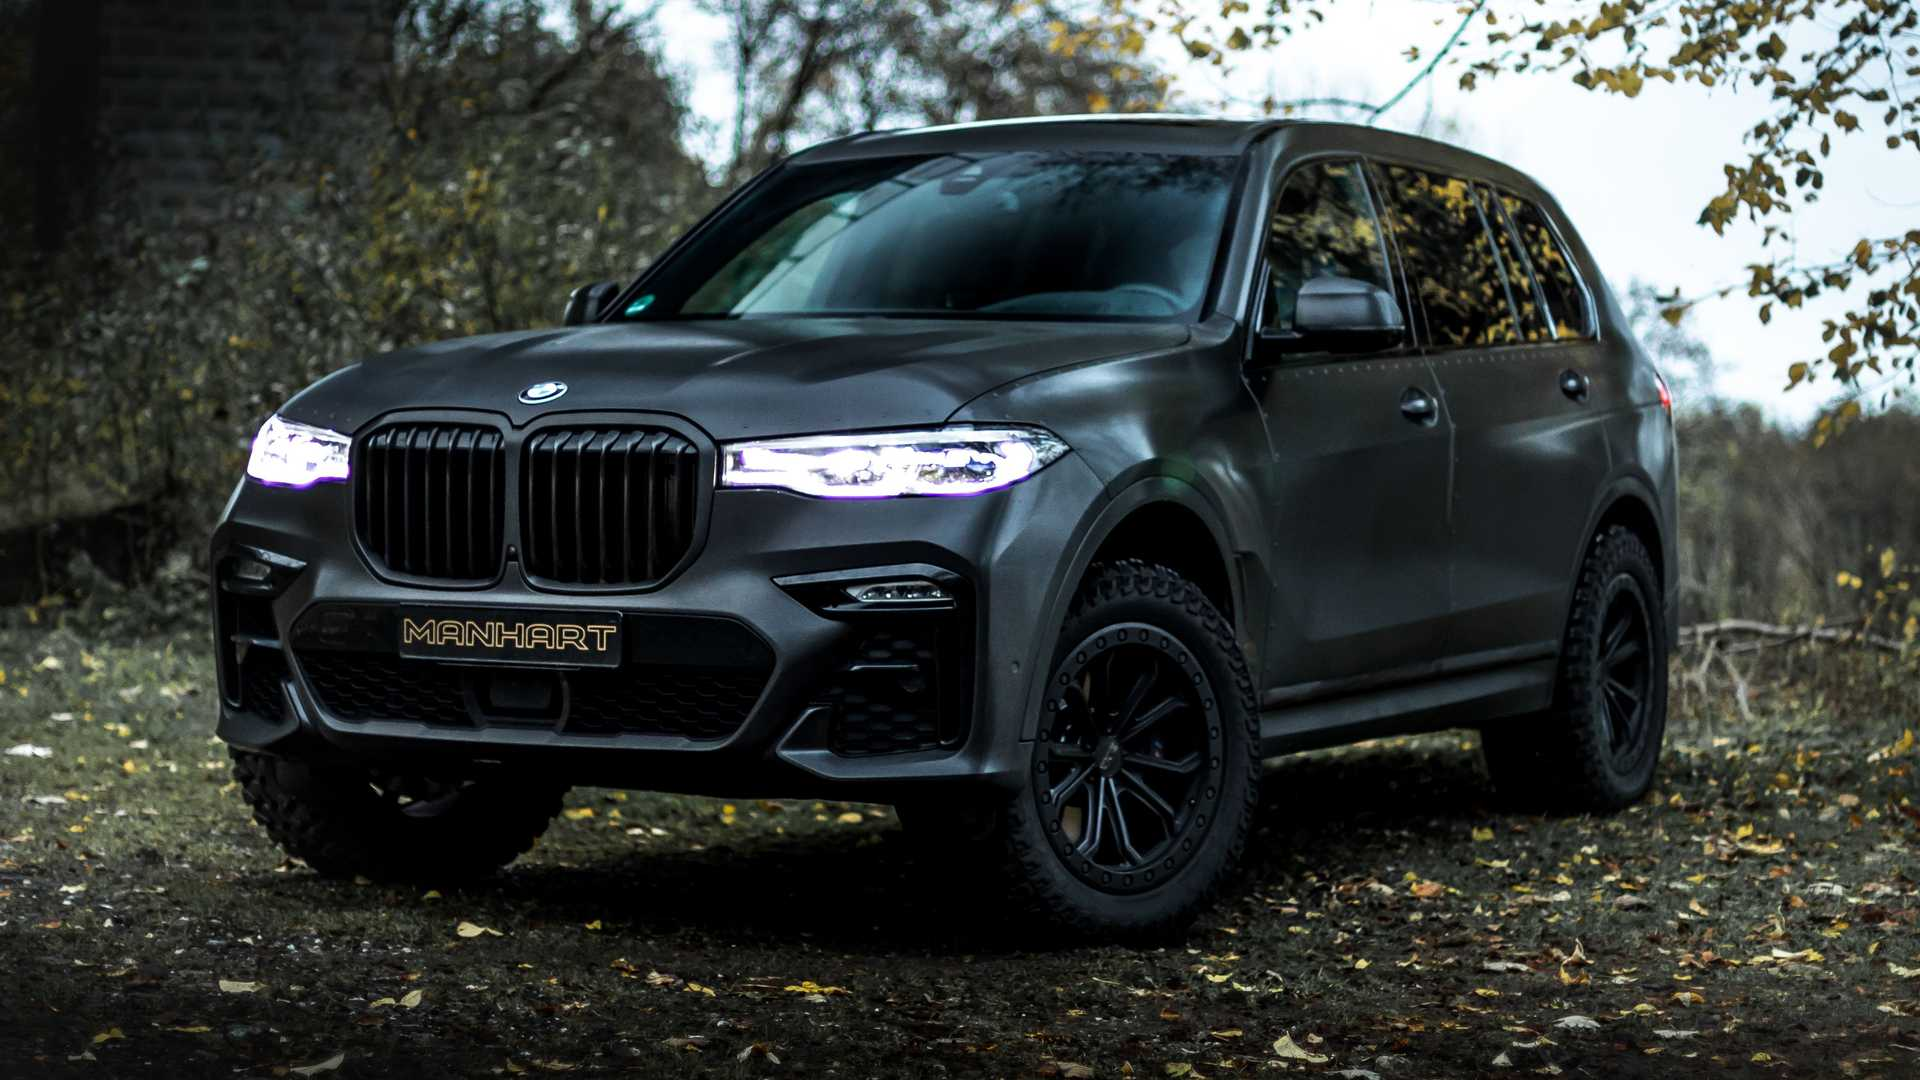 BMW X7 Dirt Edition By Manhart Joins The Army With Armored Look